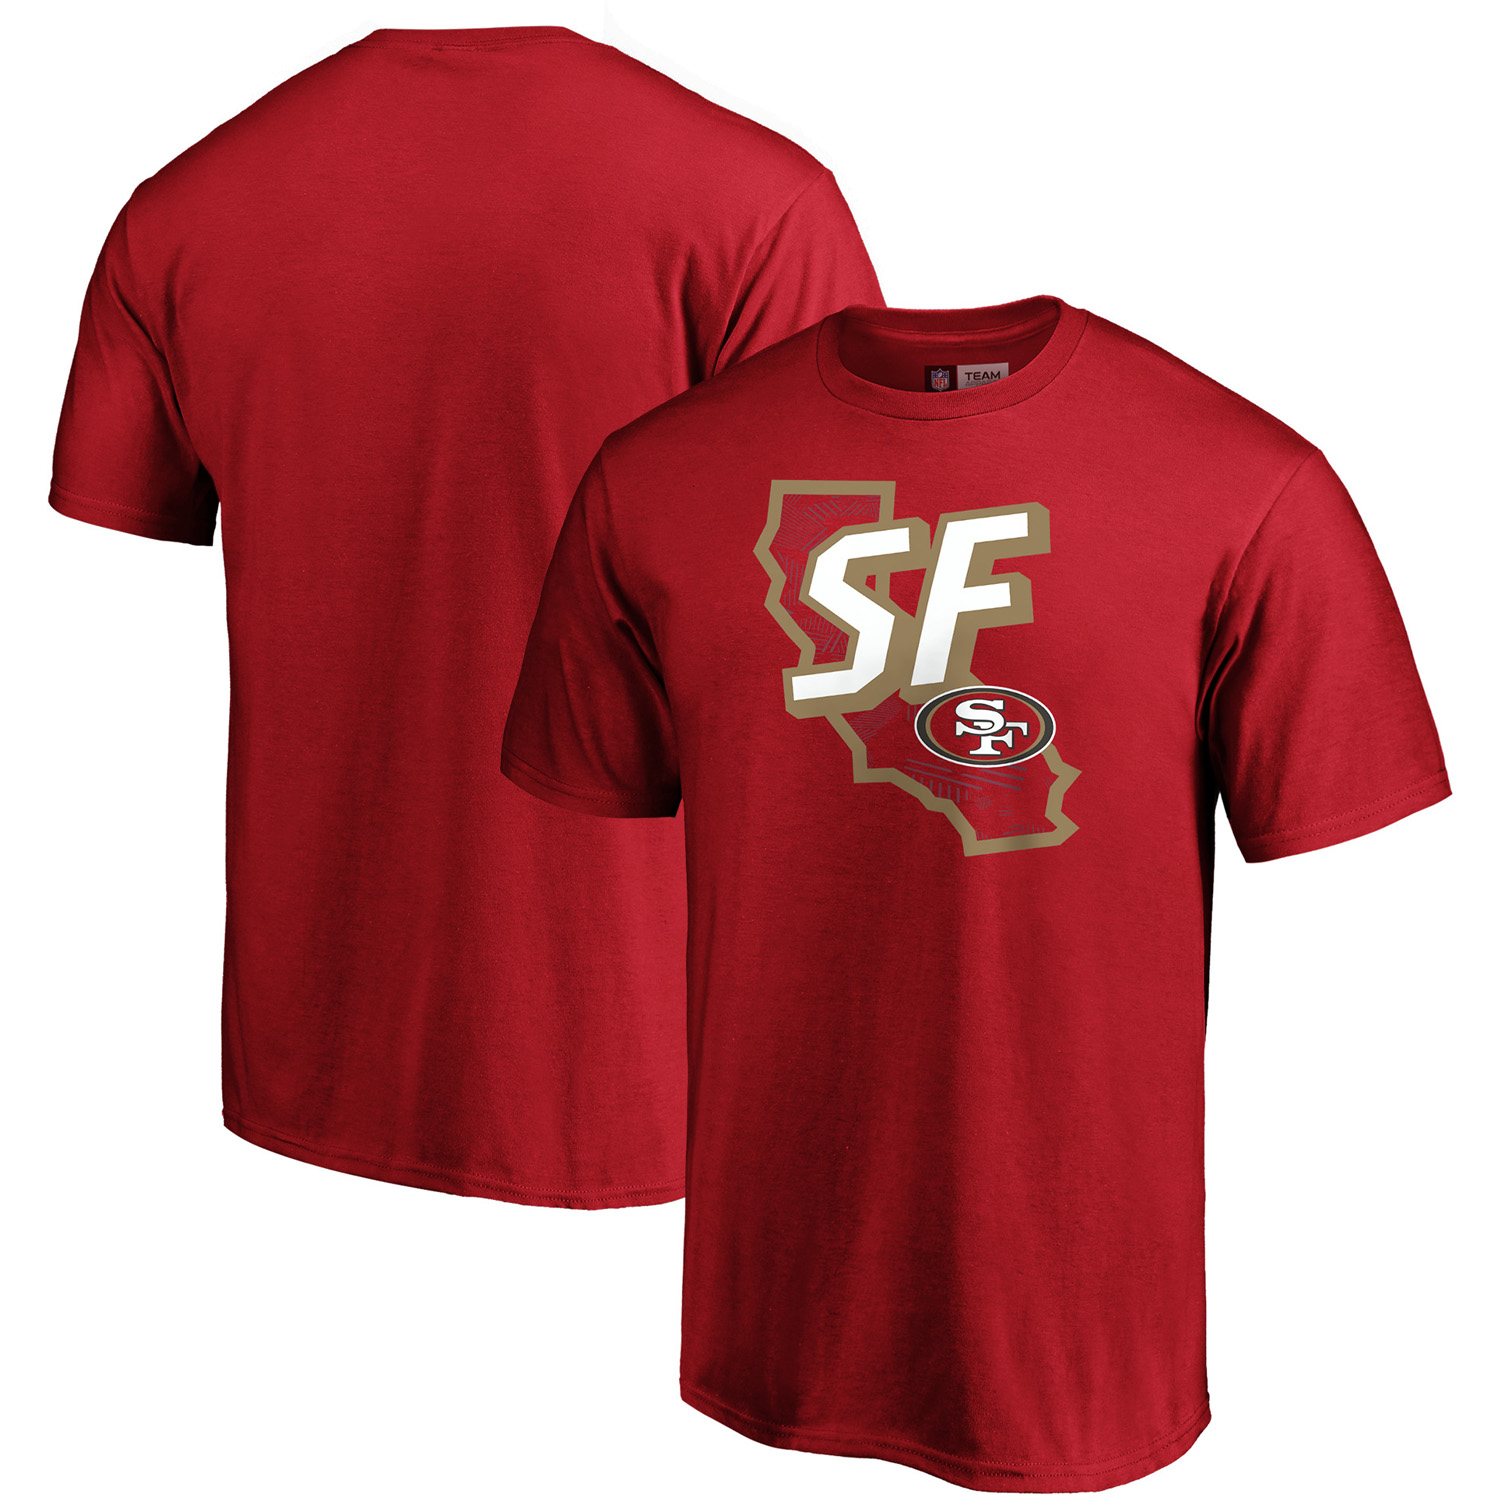 1e14913c San Francisco 49ers Team Shop - Walmart.com